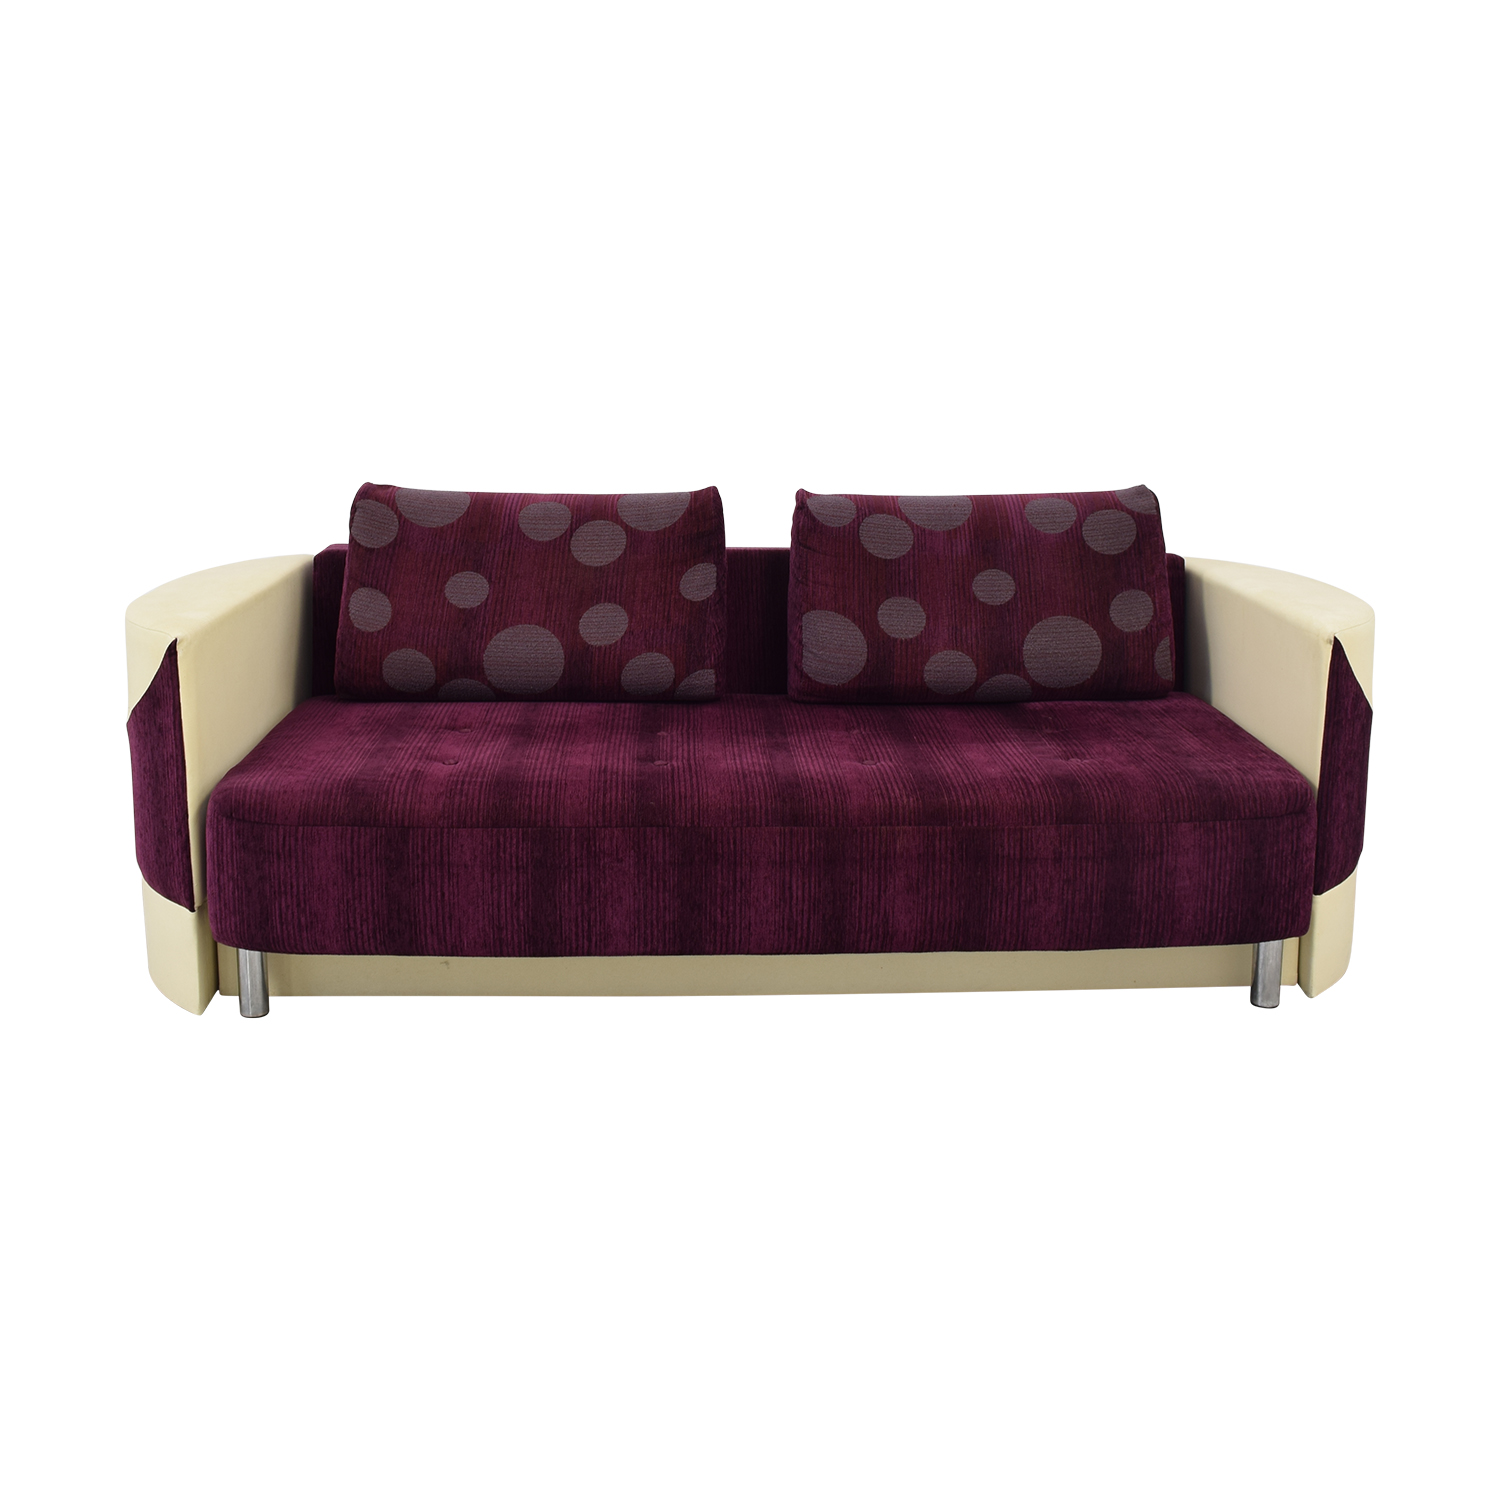 buy Retro Sleeper Sofa